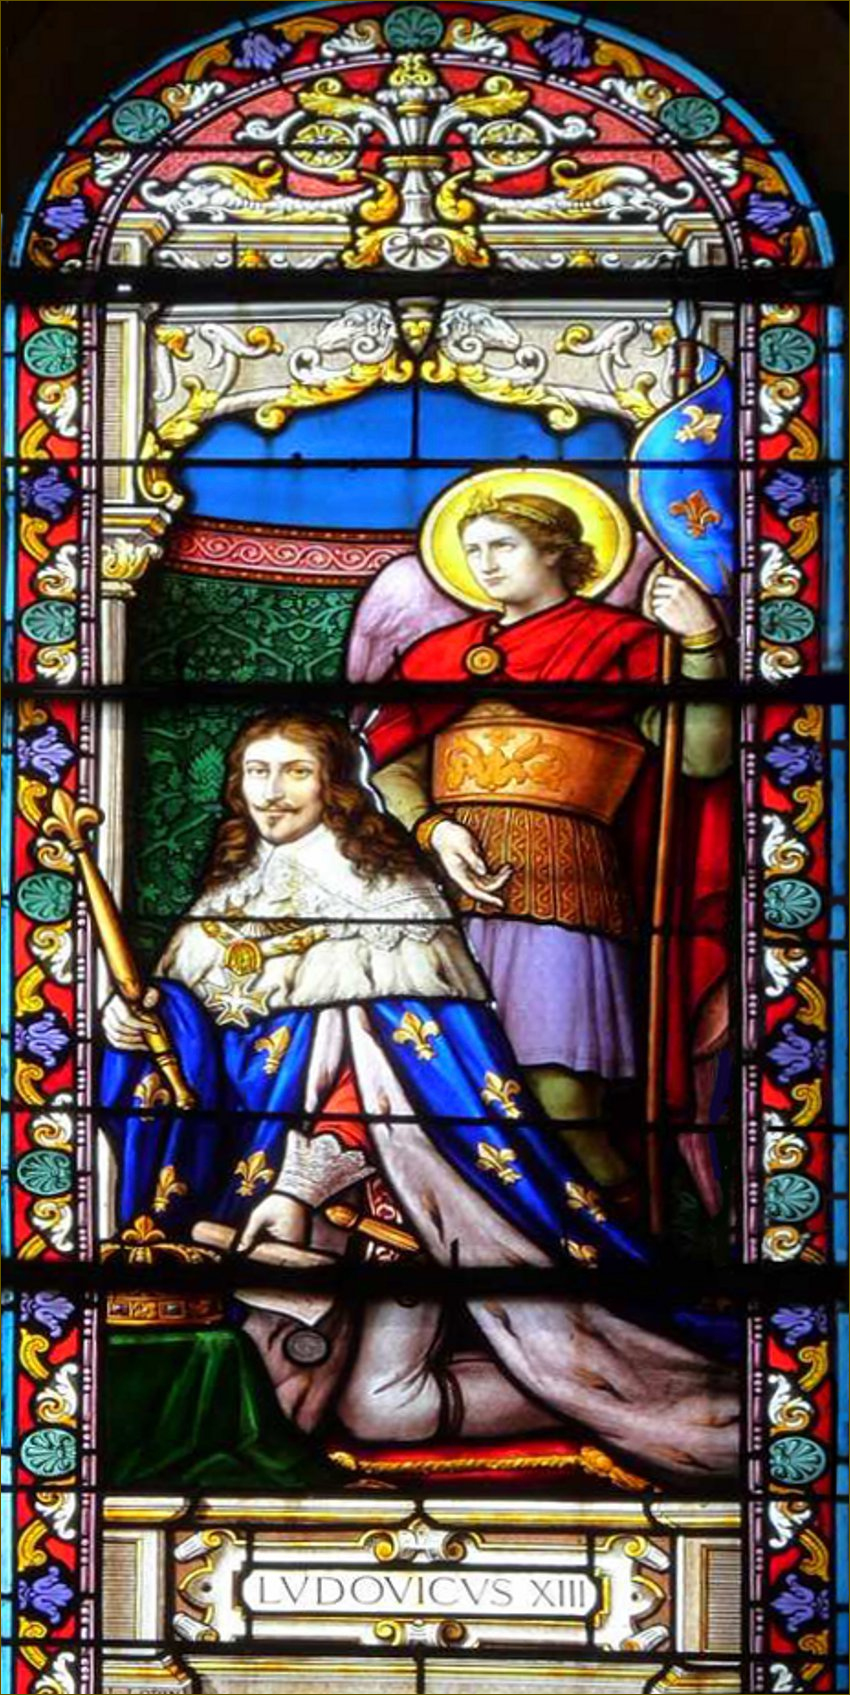 Louis XIII, roi de France, avec Saint Michel Archange, co-patron de la France